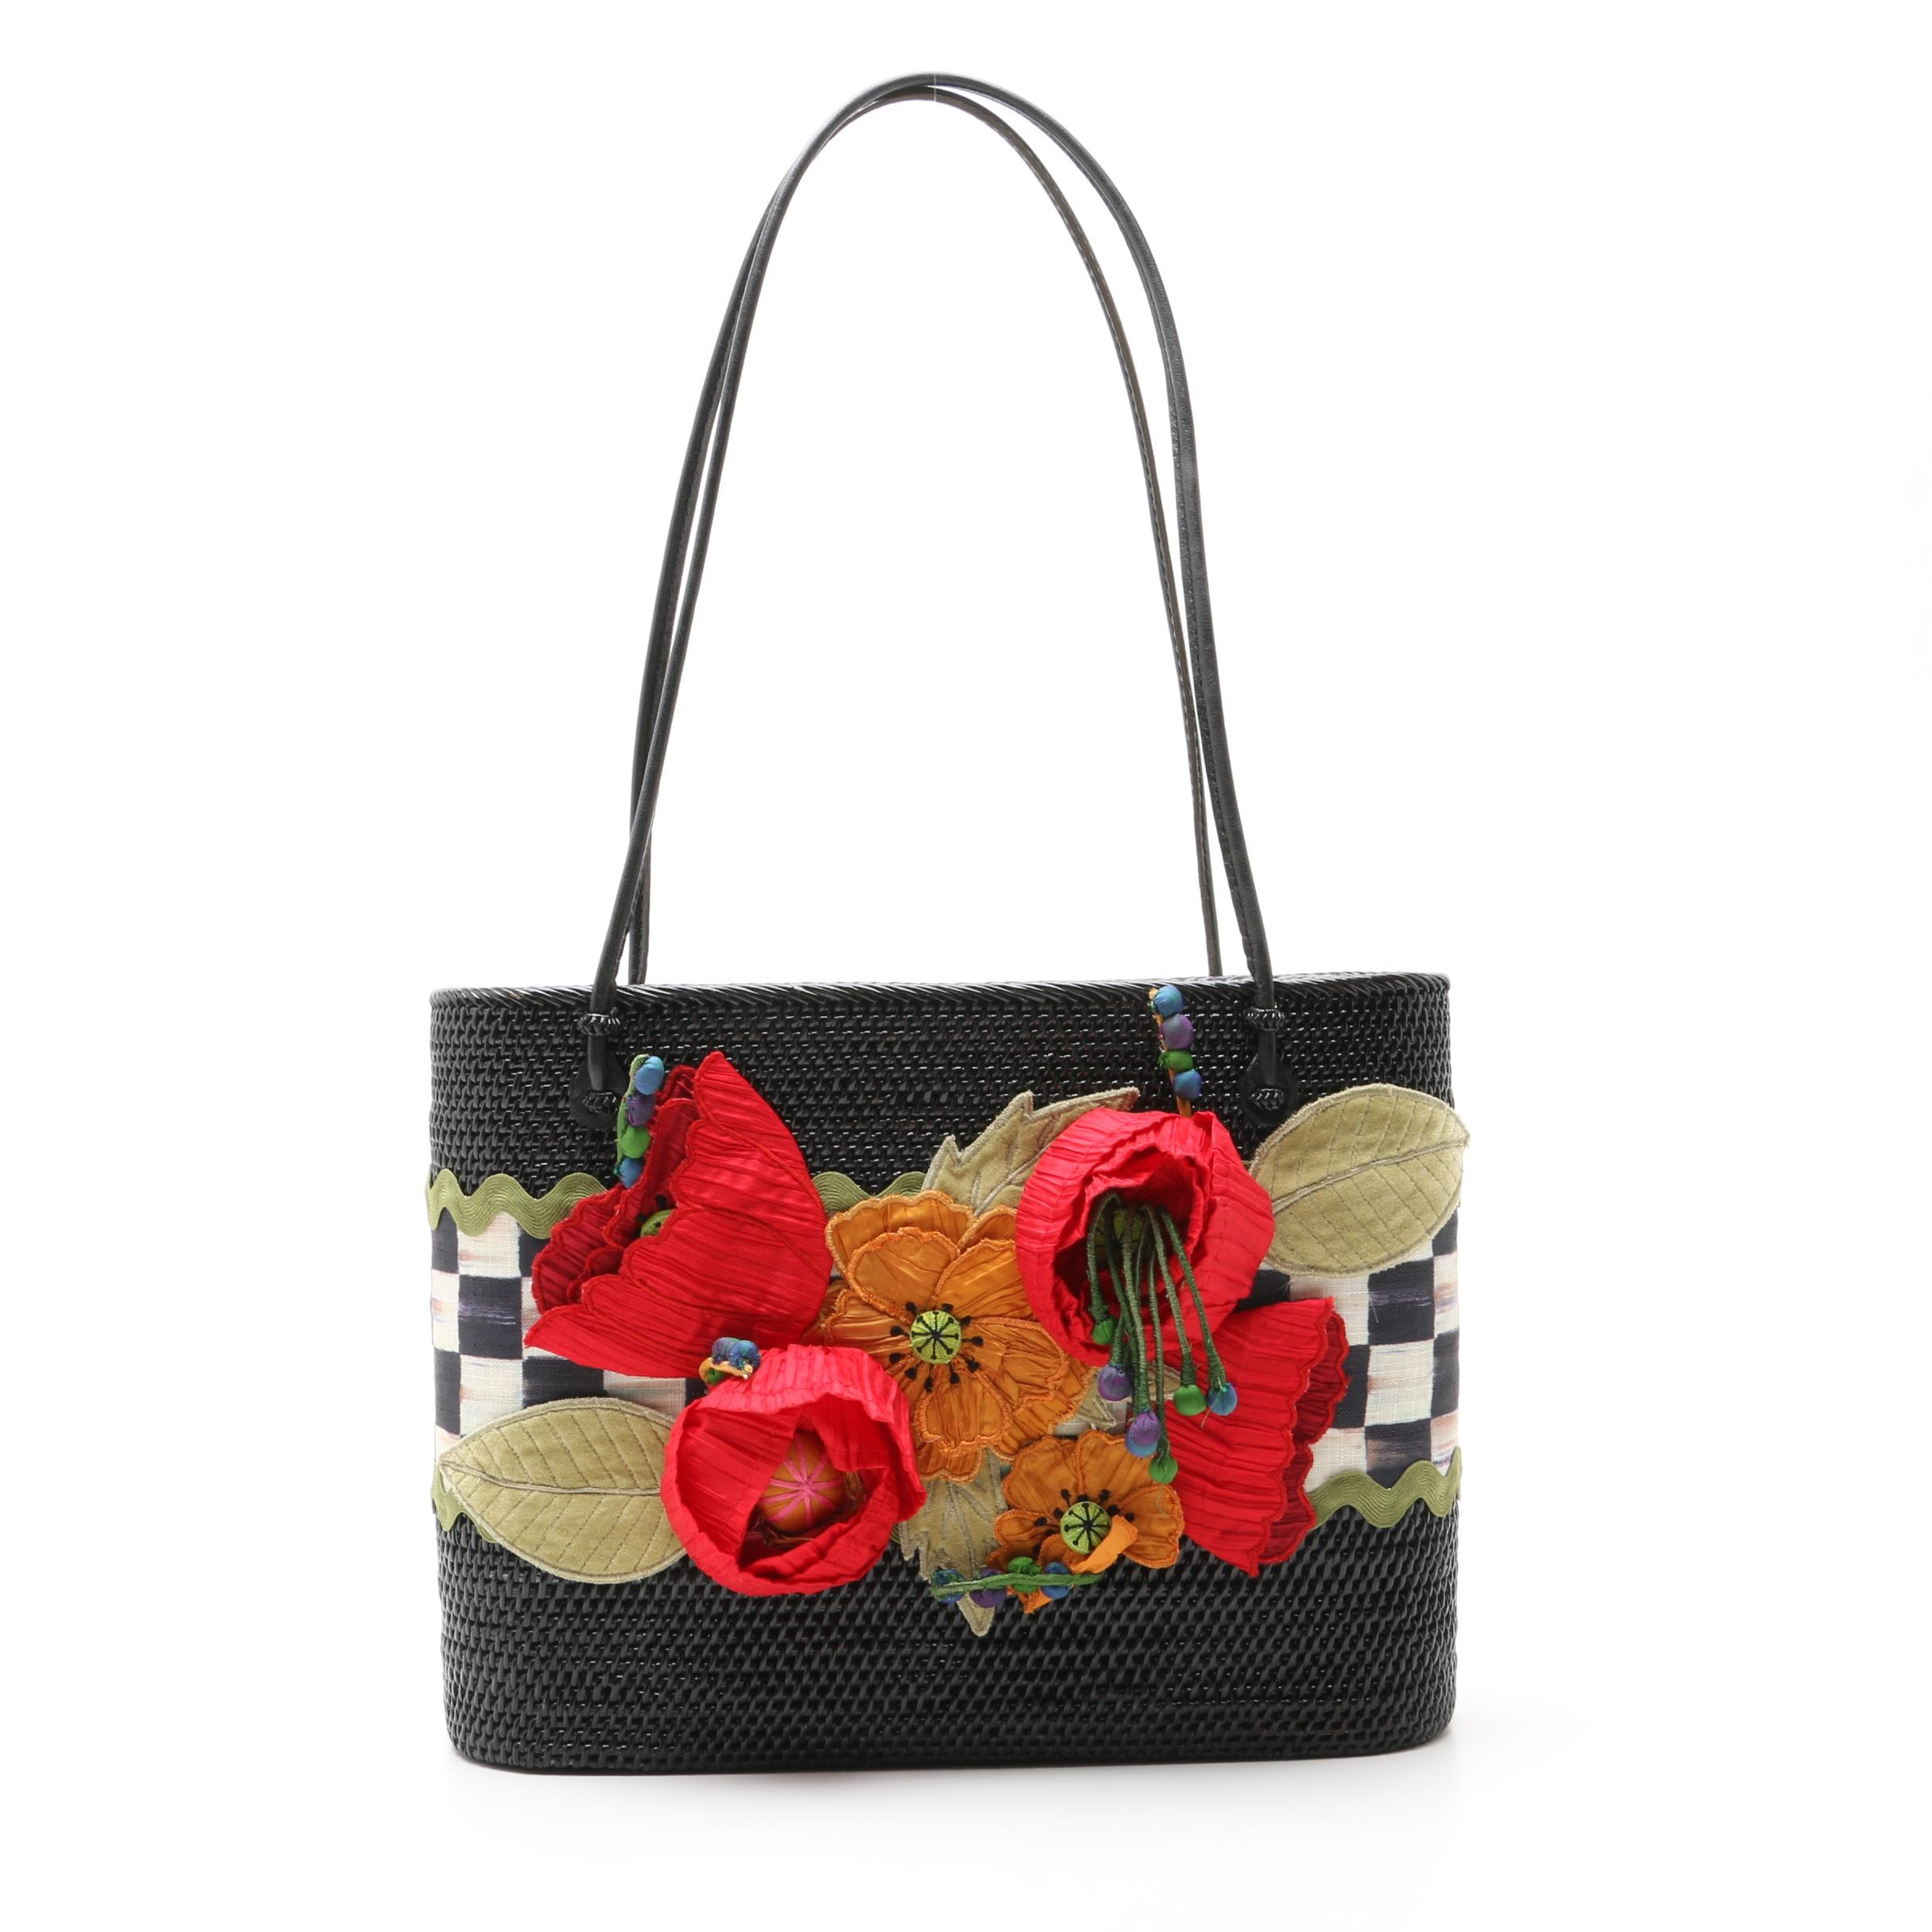 MacKenzie-Childs Floral Embellished Black Woven Wicker Tote